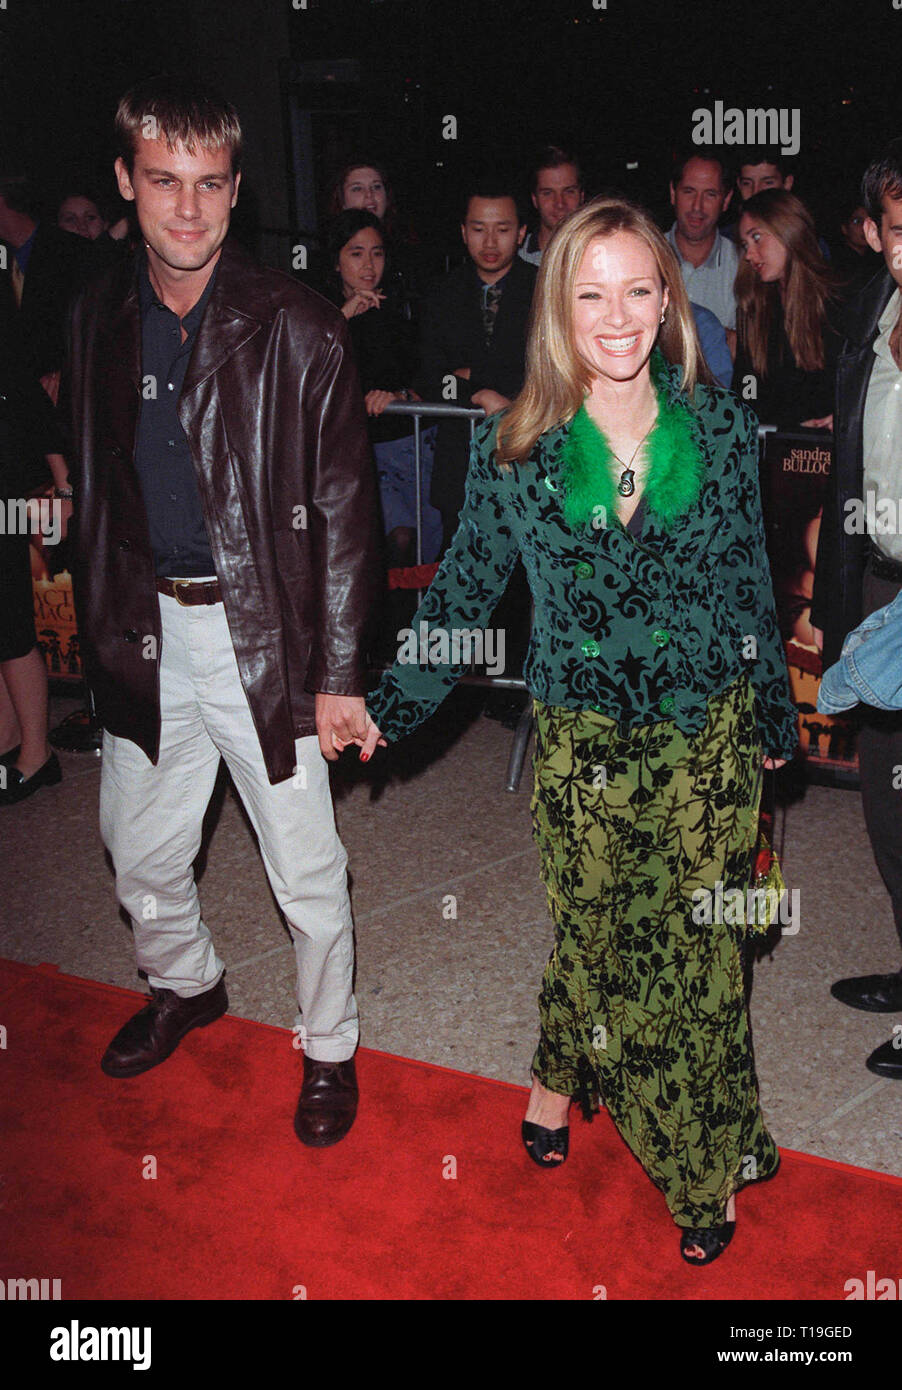 LOS ANGELES, CA - October 13, 1998:  Actress LAUREN HOLLY & date at the Los Angeles premiere of  'Practical Magic' which stars Sandra Bullock, Nicole Kidman, Aidan Quinn & Stockard Channing. - Stock Image